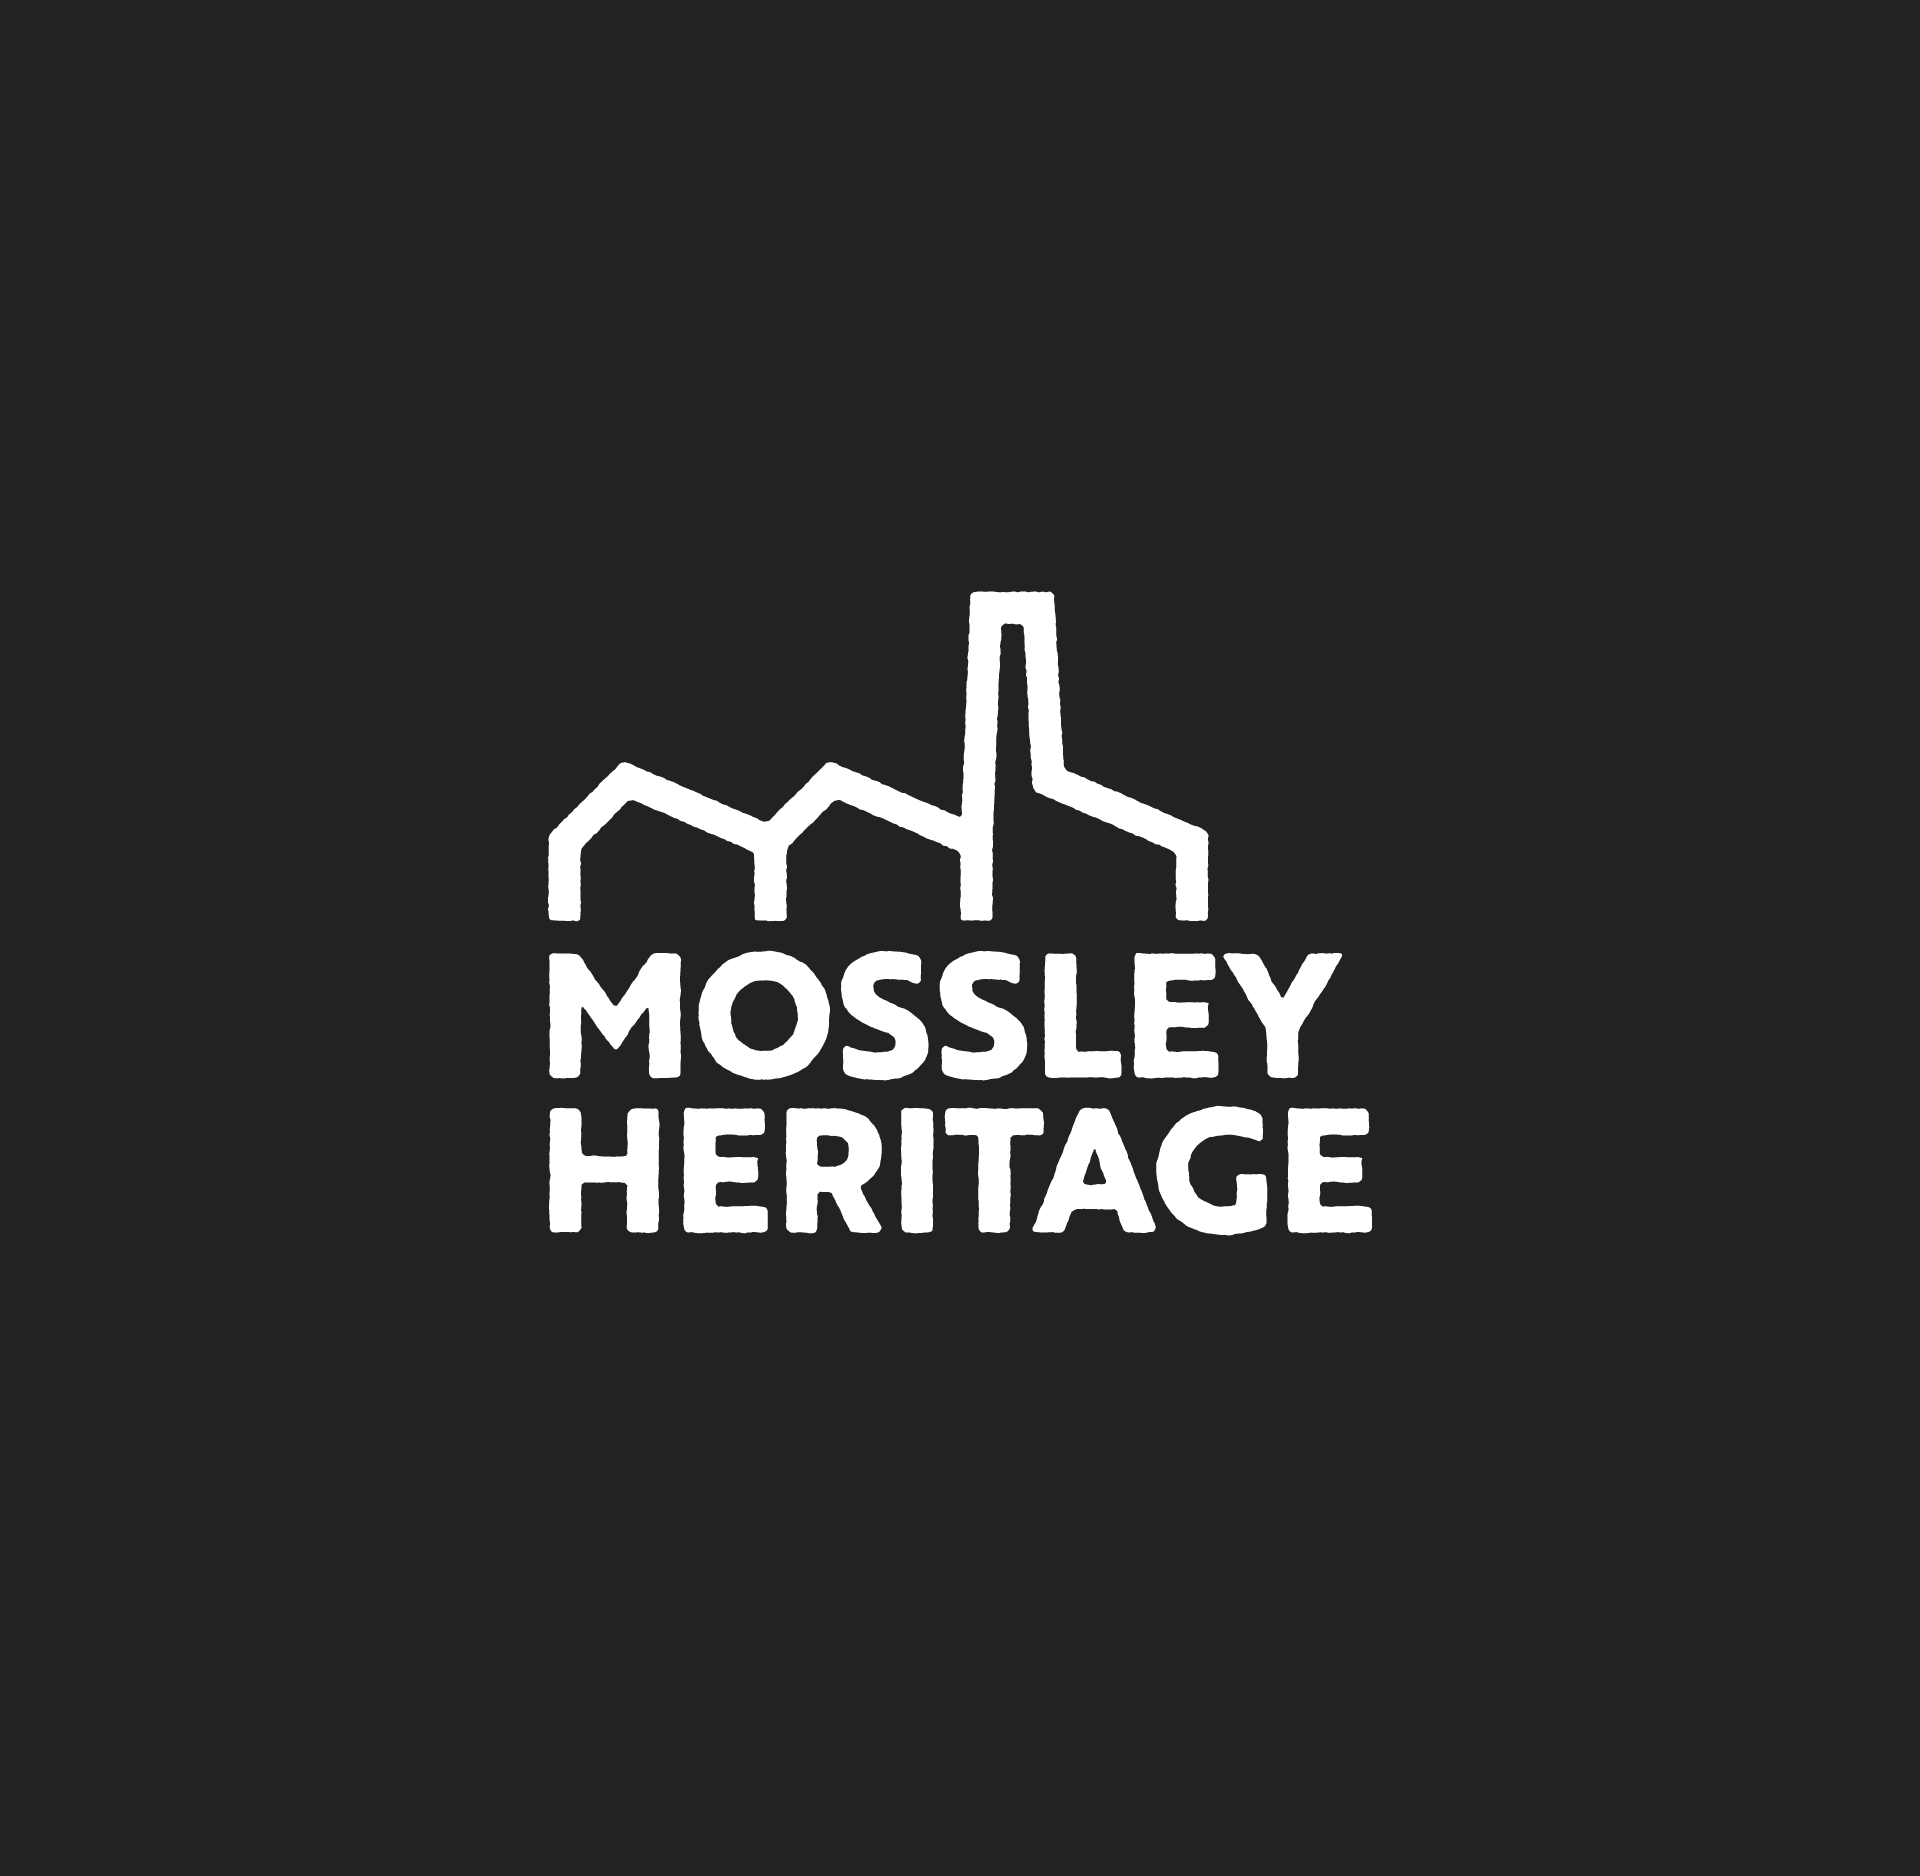 Mossley Heritage logo in white on black. The logo is formed from the letters M and H and forms the silhouette of industrial buildings and a mill chimney. Beneath the mark sits the name in all caps in a weathered looking sans serif typeface.